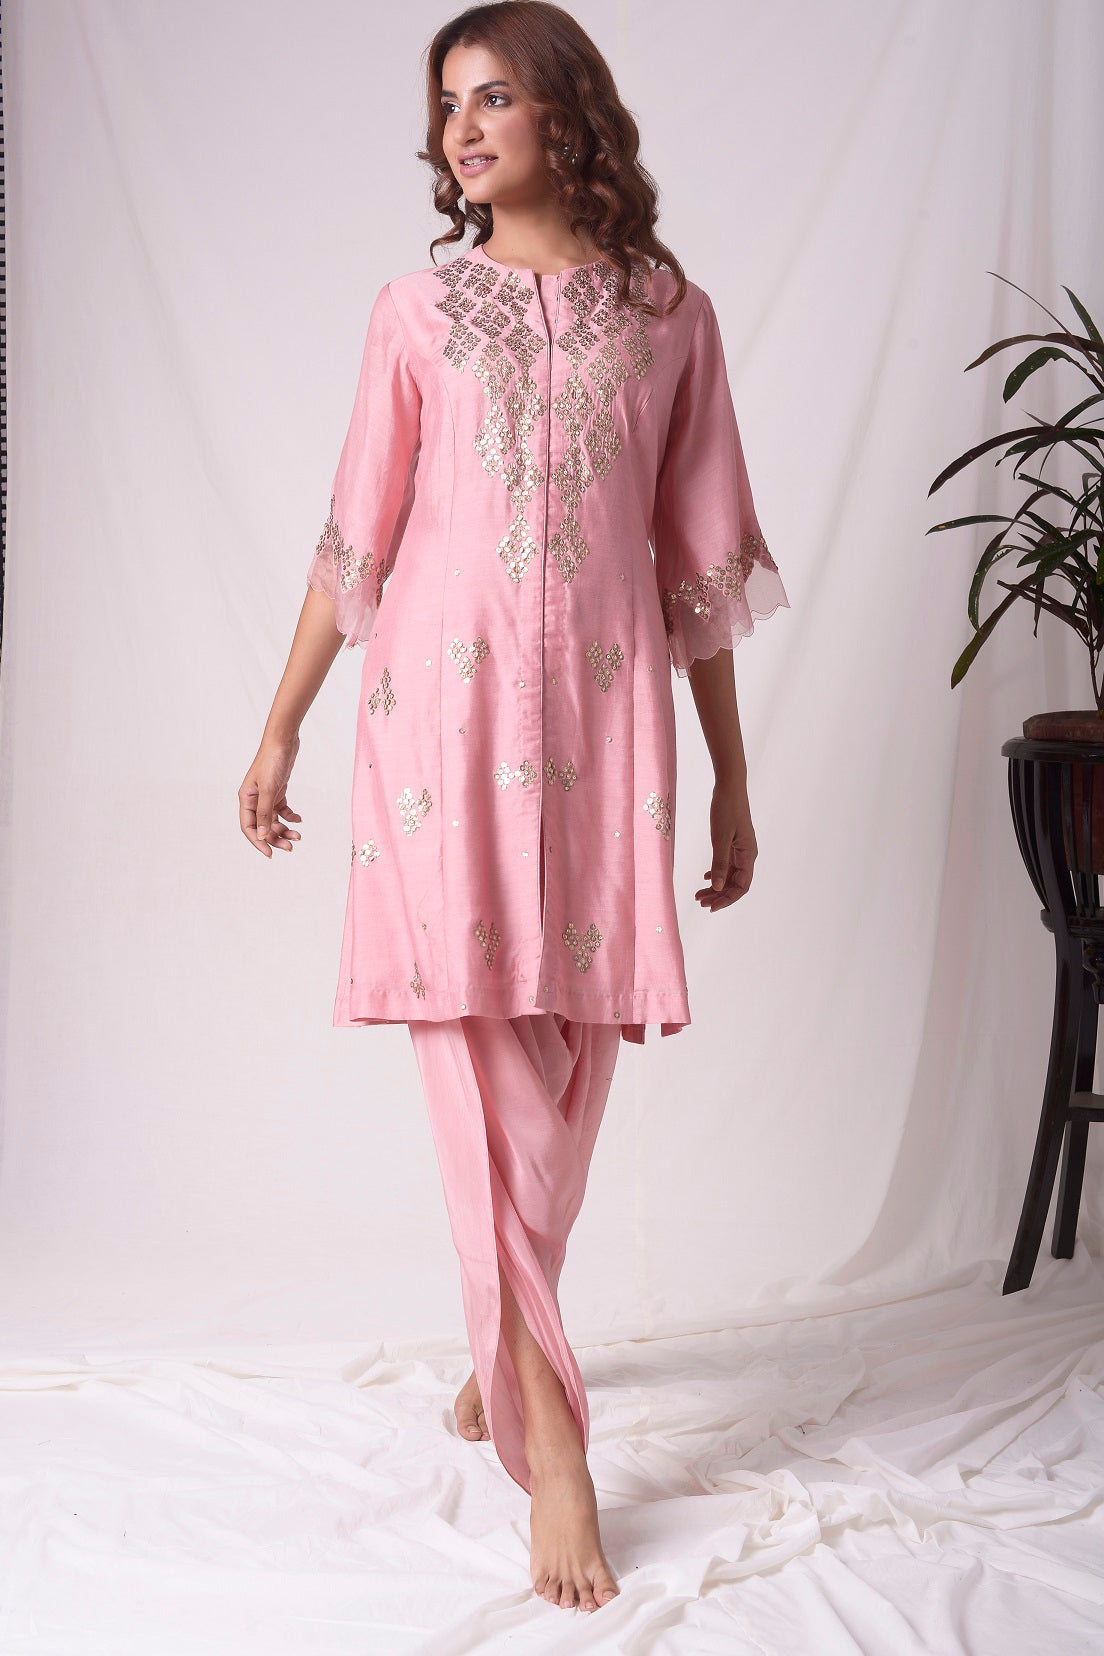 Dusty Pink Chanderi Suit With Dhoti Online in USA-full view-2